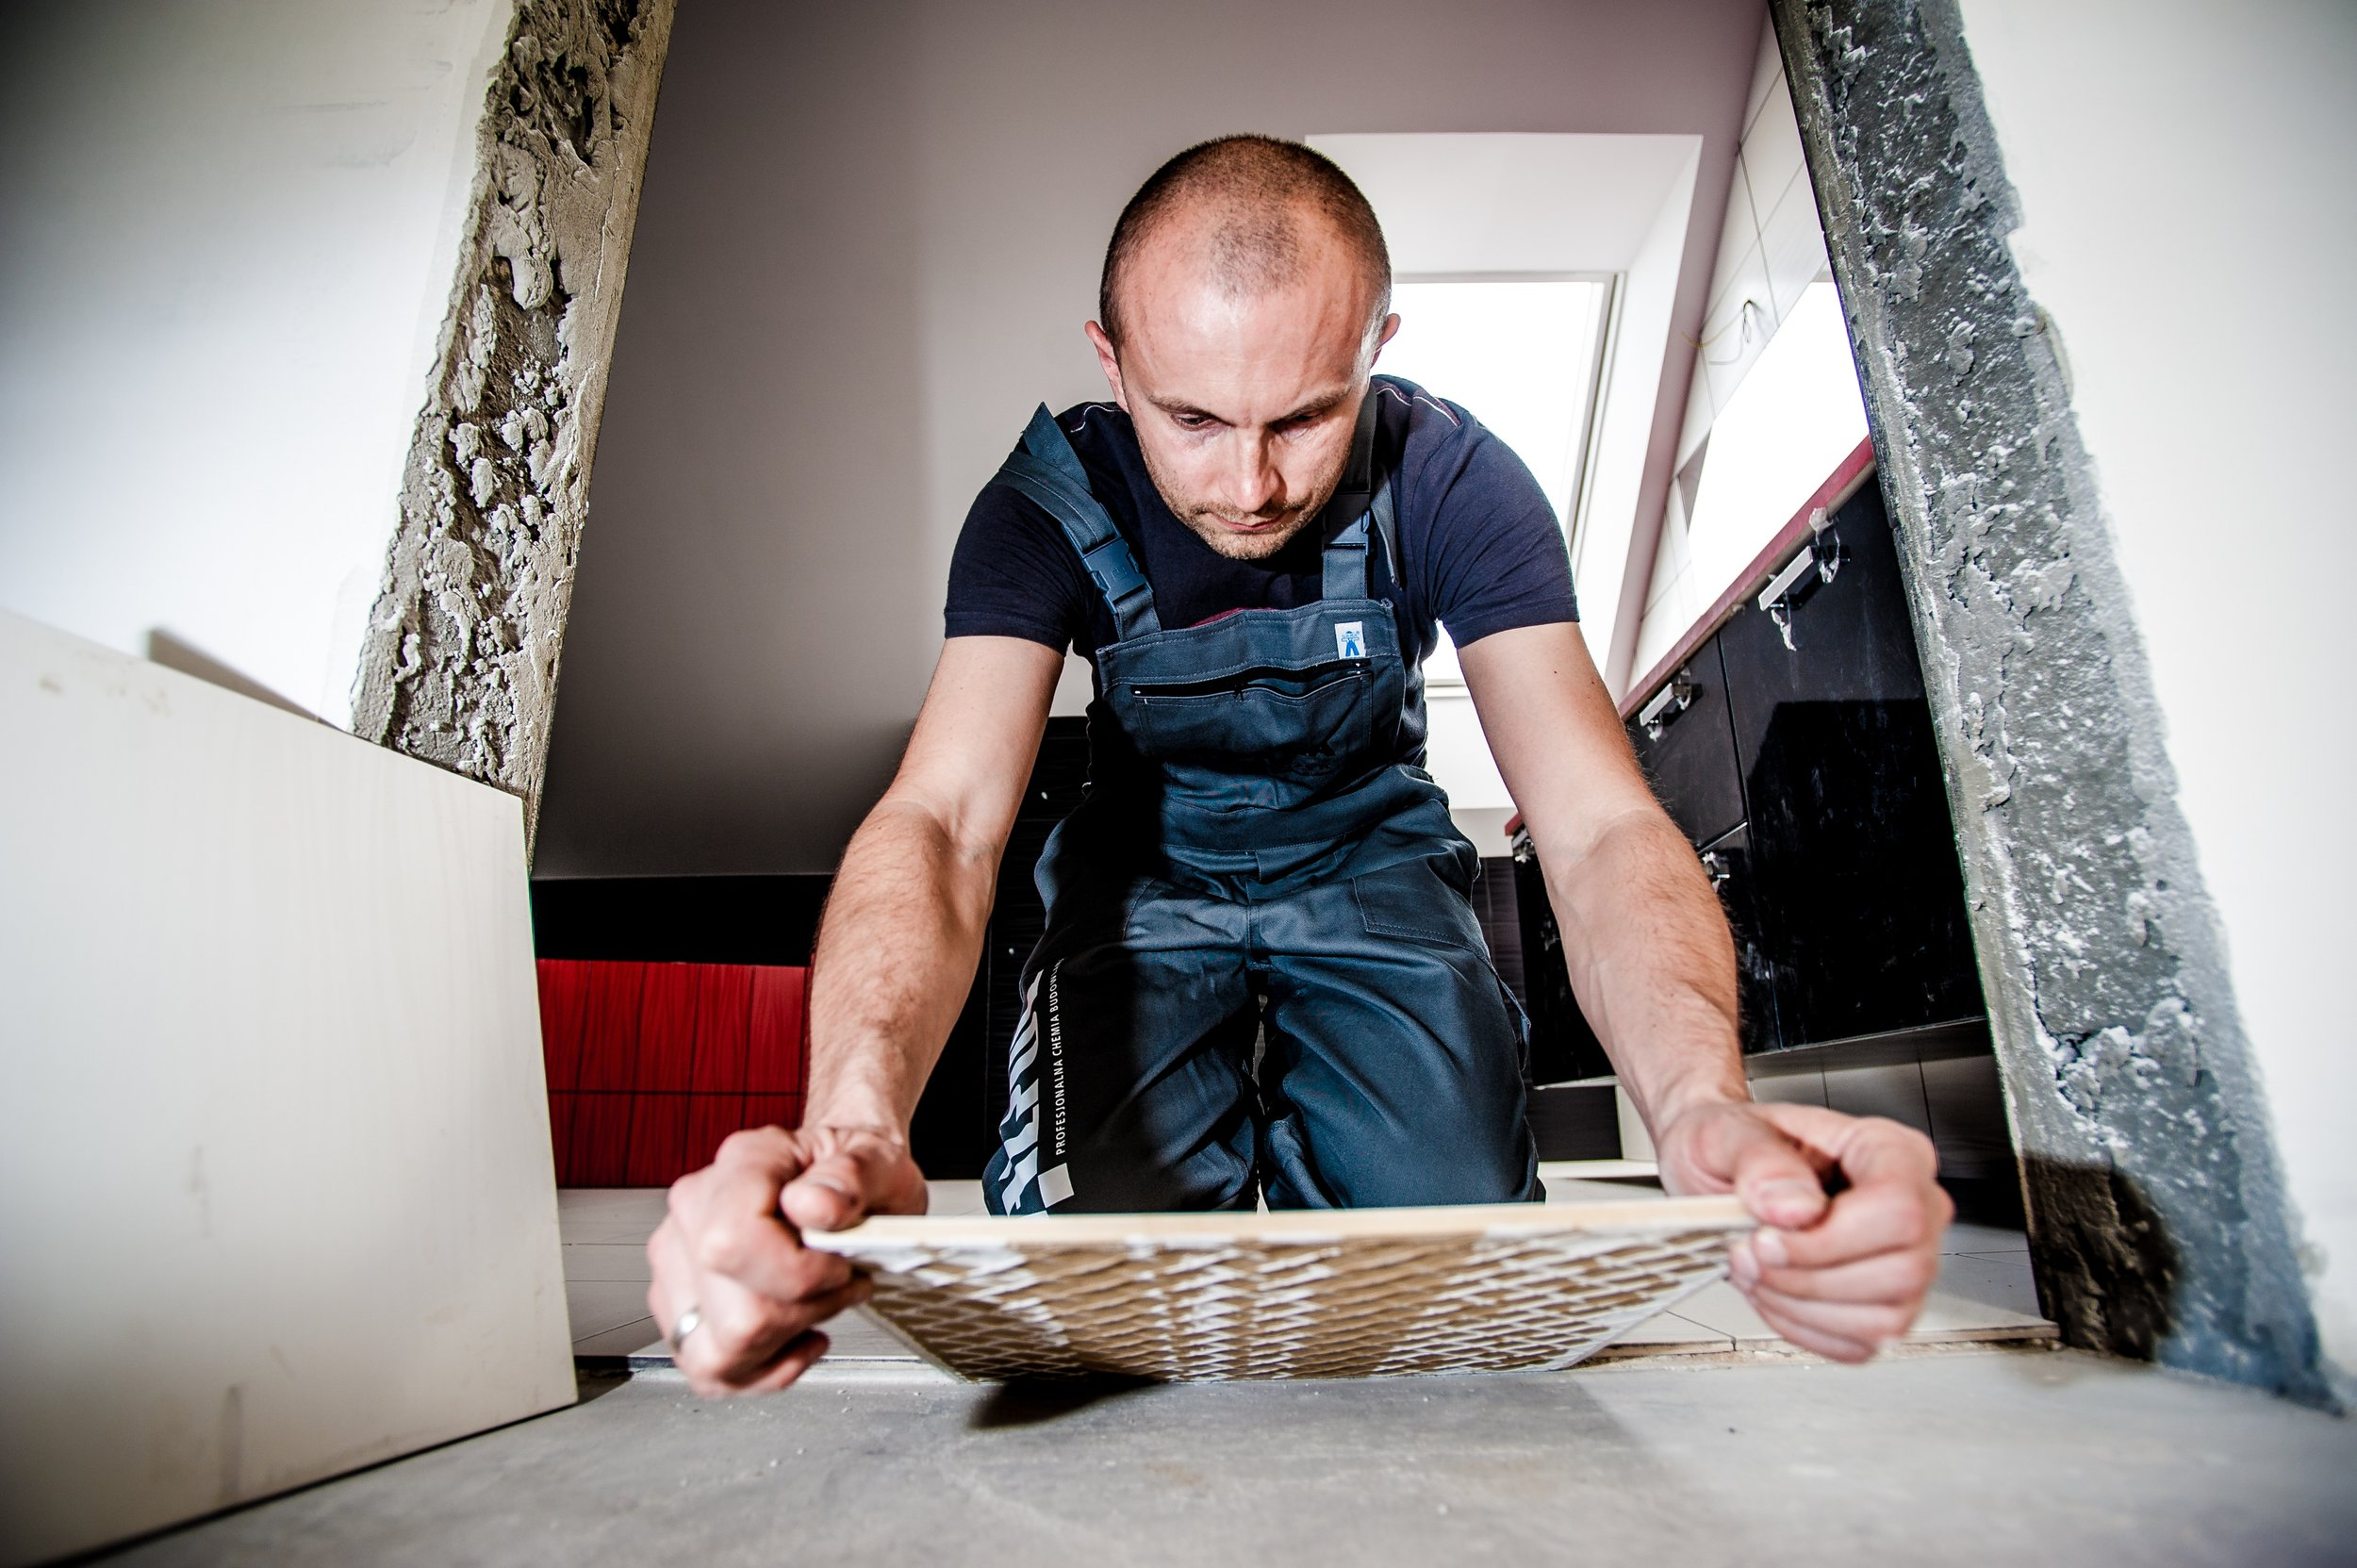 WHO WE ARE   York Construction Academy is a Private Career College founded in 2001 and registered under the Private Career Colleges Act of 2005. We provide hands-on learning experience for individuals pursuing a career in the construction and home renovation industry.